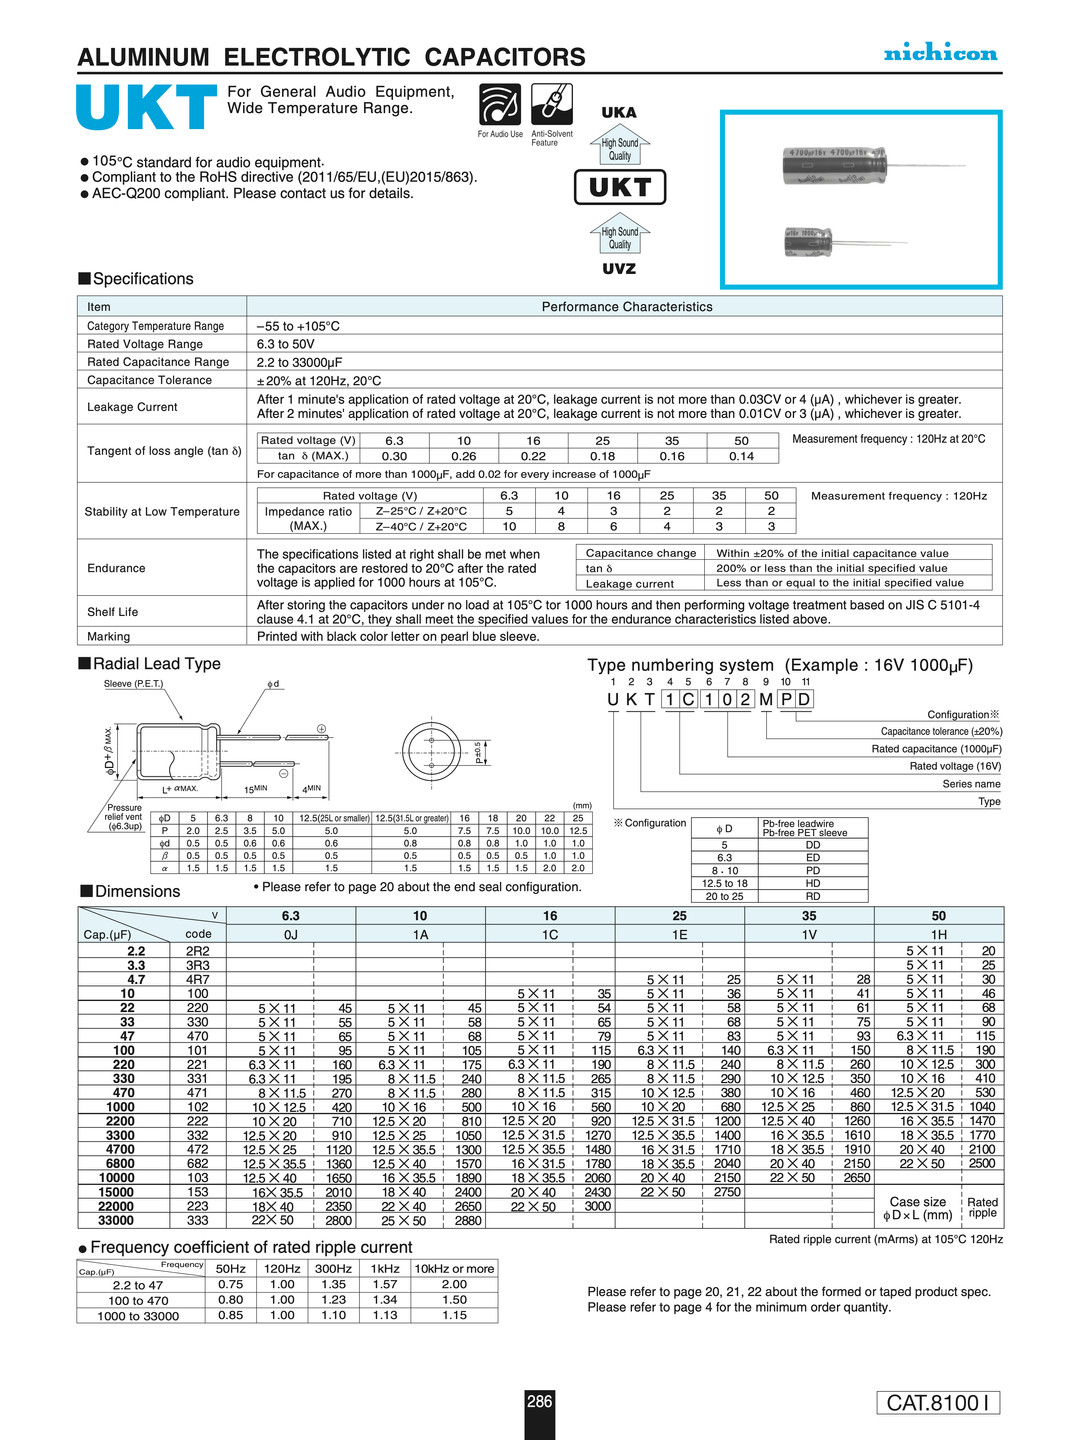 Nichicon UKT Series Capacitor Data Sheet